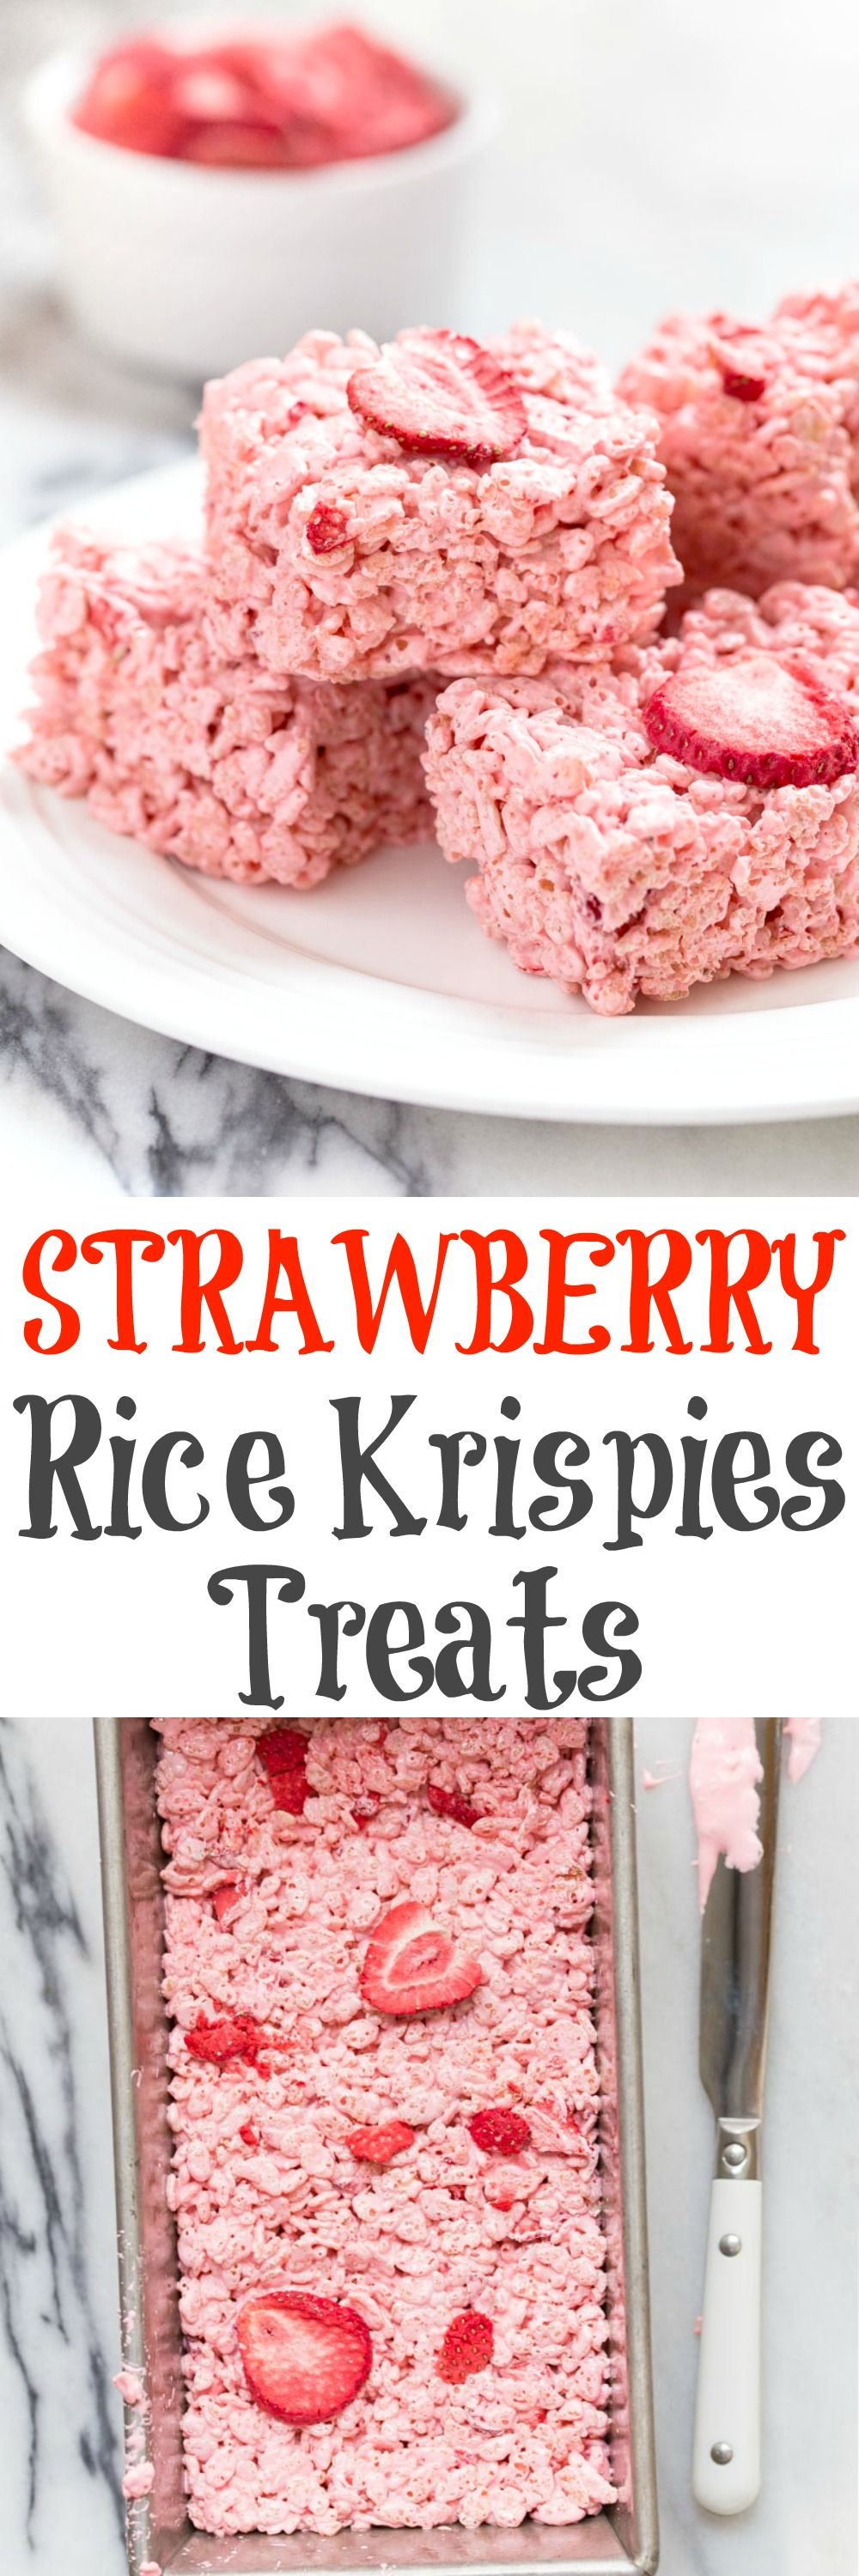 A small batch of rice crispy treats for two--made in a bread loaf pan. This one is flavored with strawberry marshmallow fluff and dried strawberries! @DessertForTwo #crispytreats